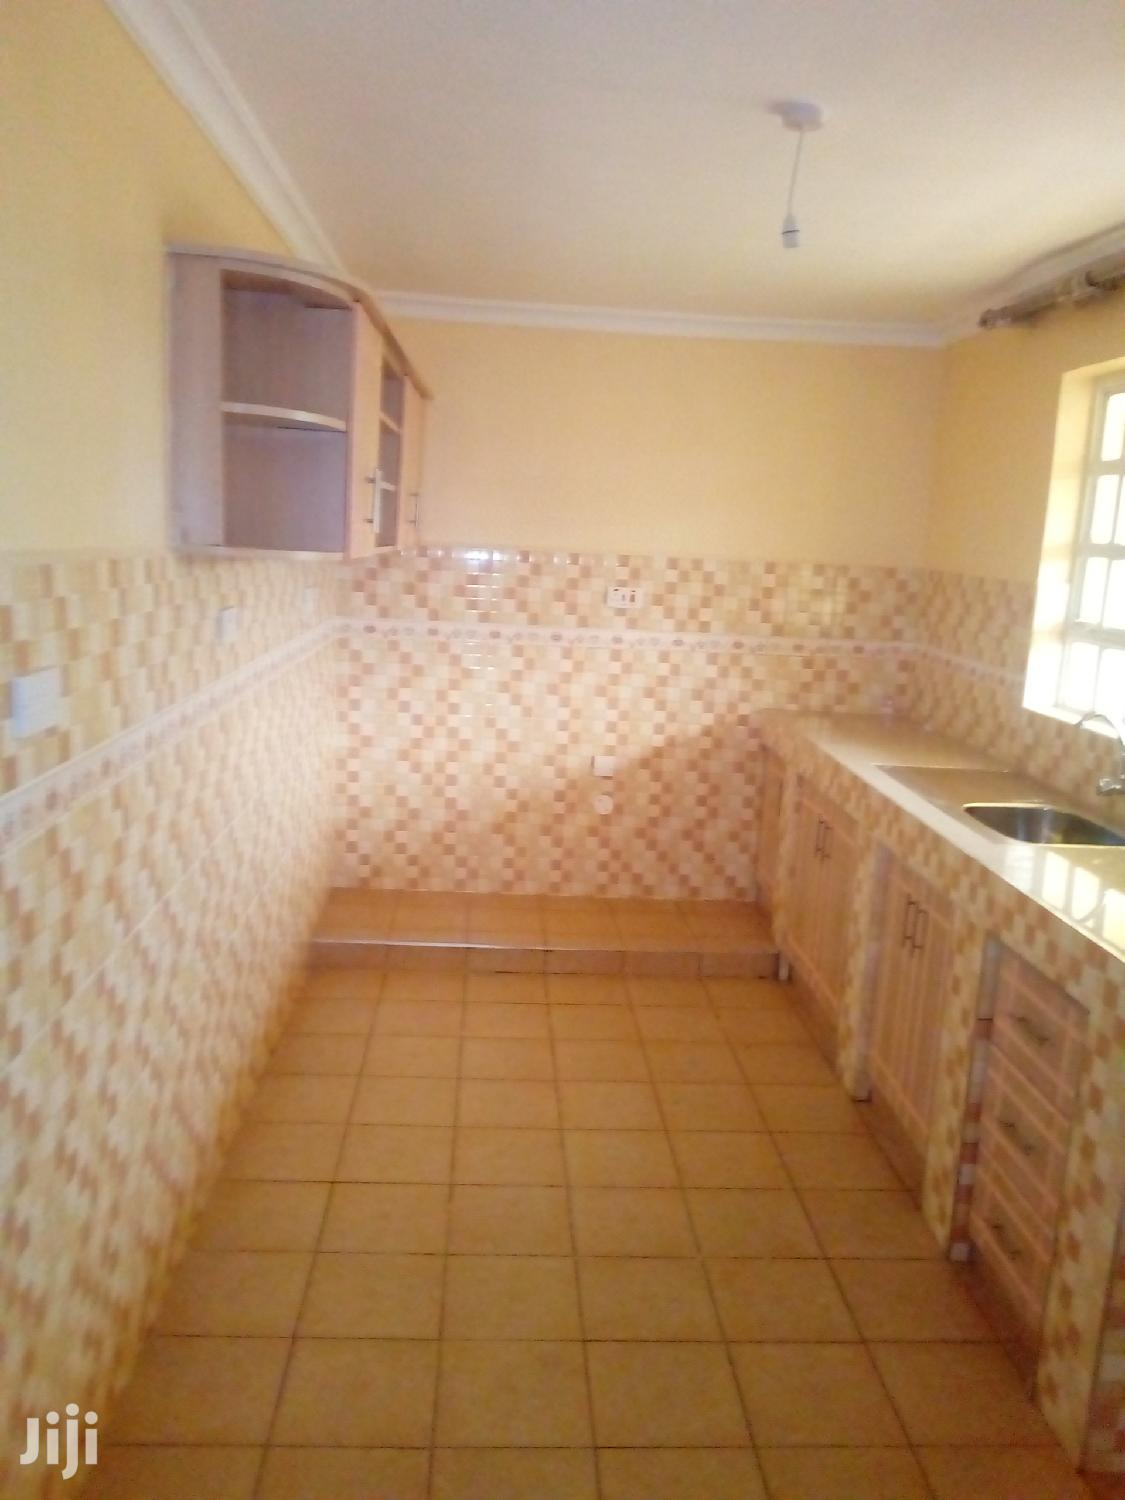 Archive: Artistic 2 Bedroom Master's Ensuit Apartment